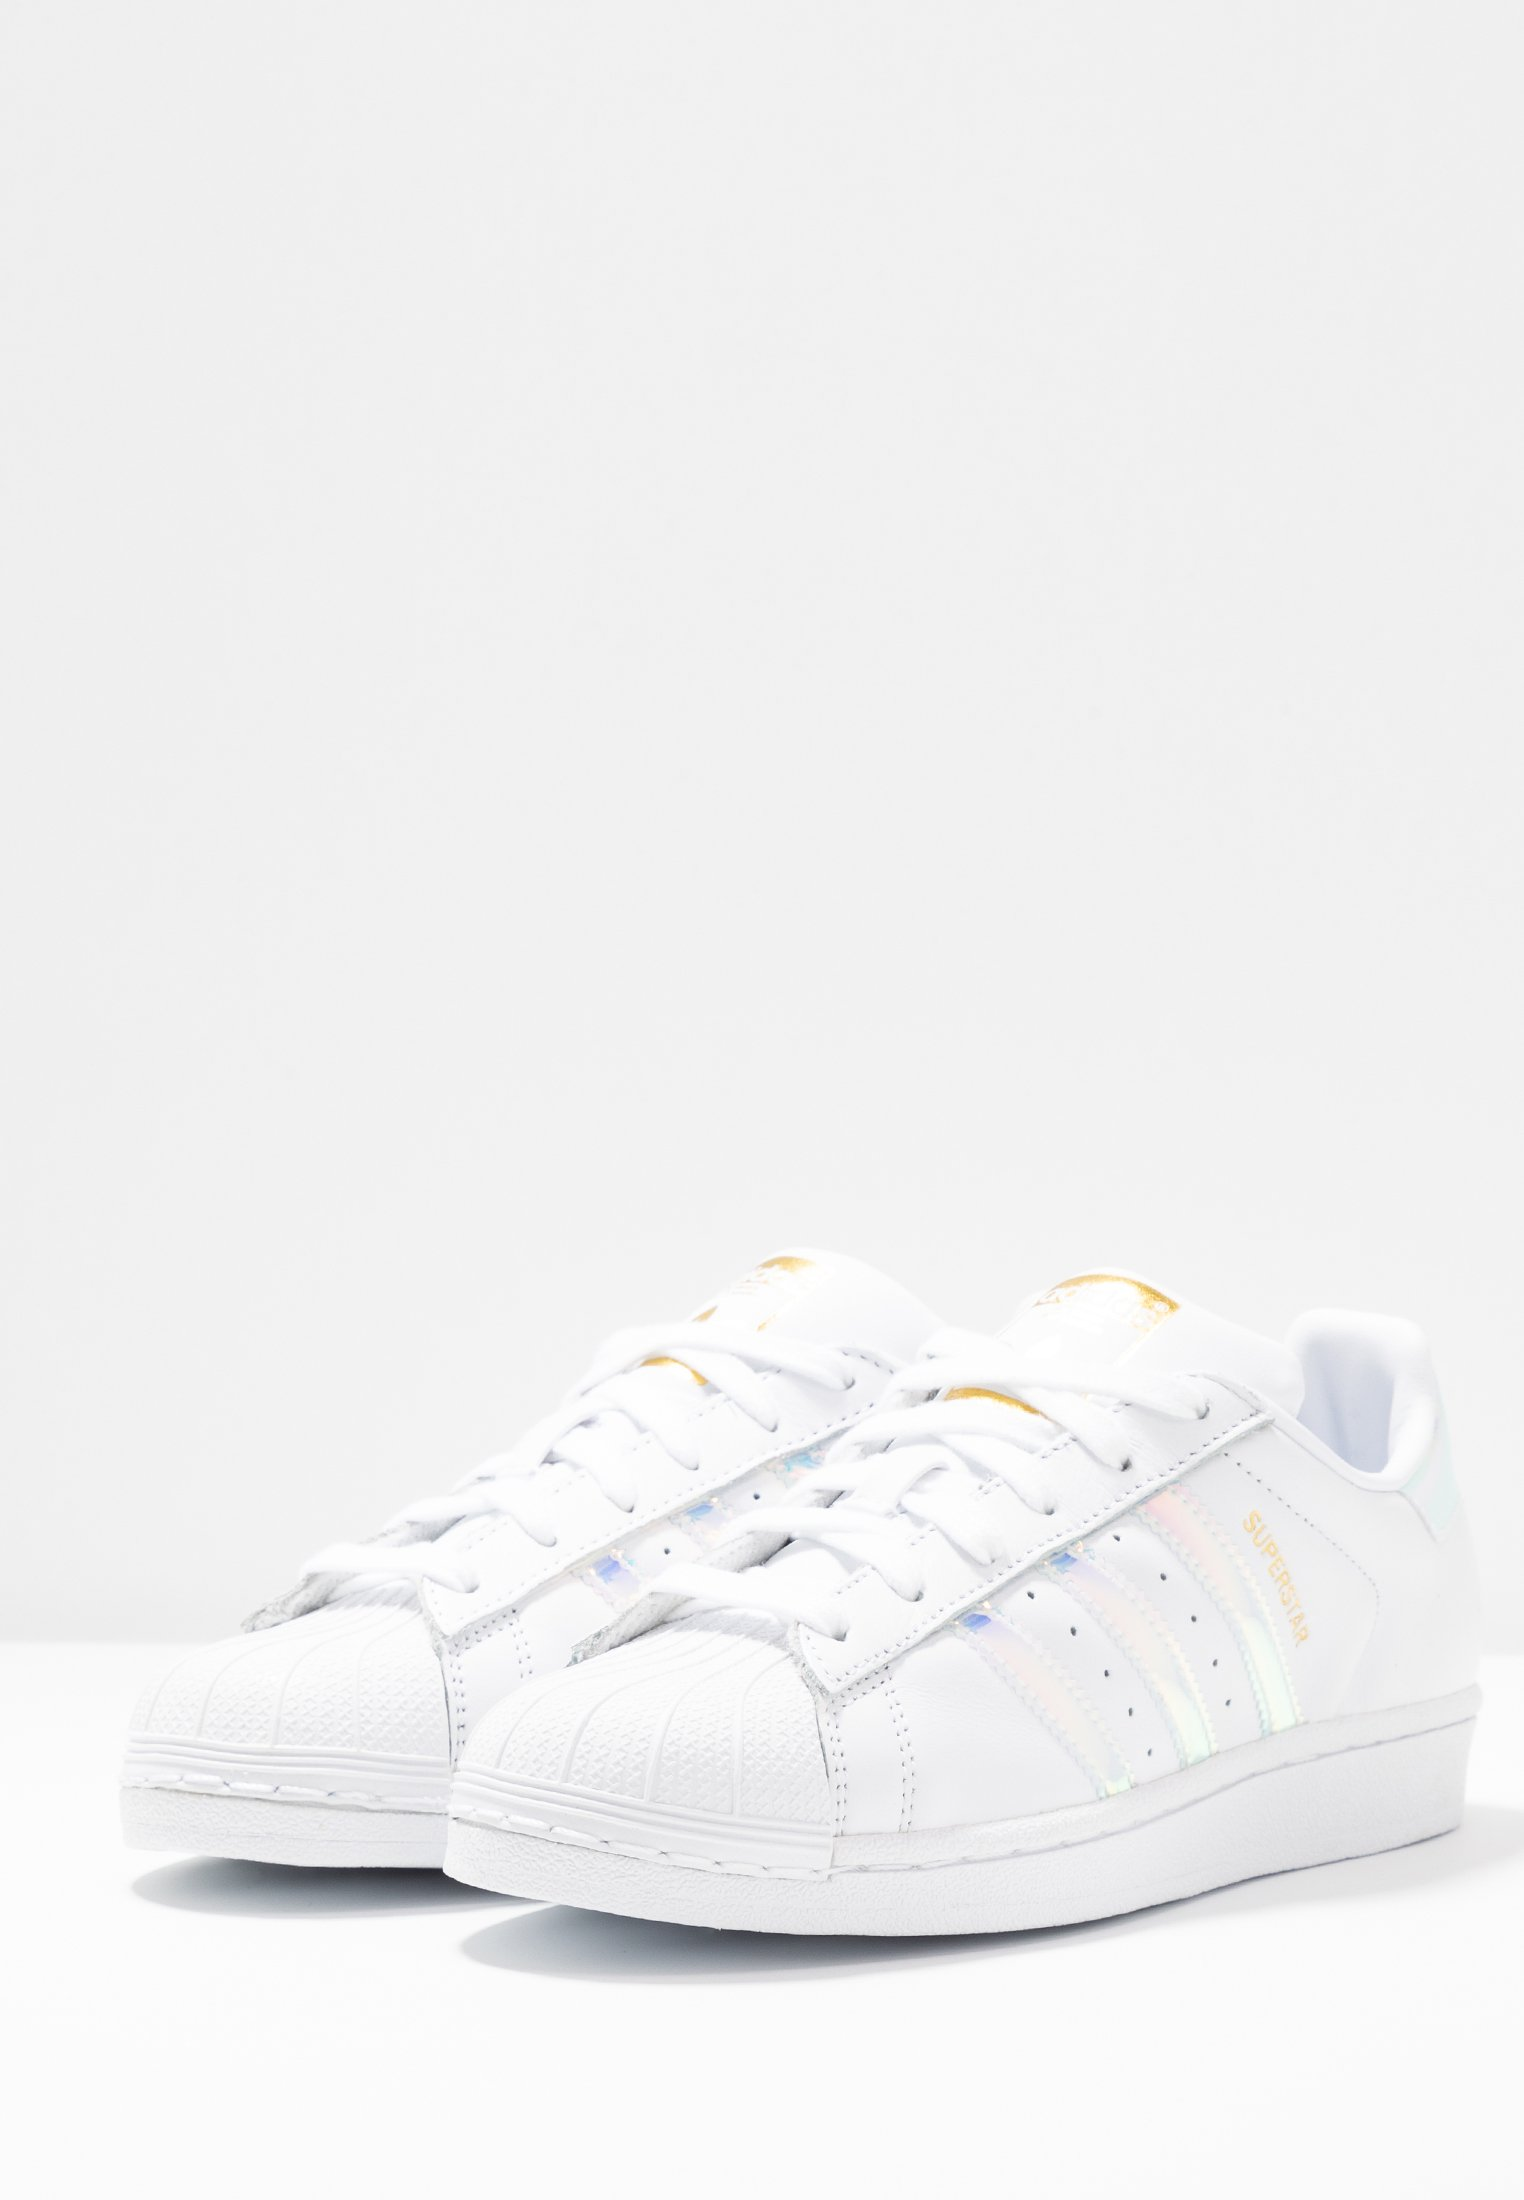 Shiny White Footwear ShoesSneakers super Originals Adidas Collegiate gold Metallic Stripes Basse Superstar qLSzVpGMU